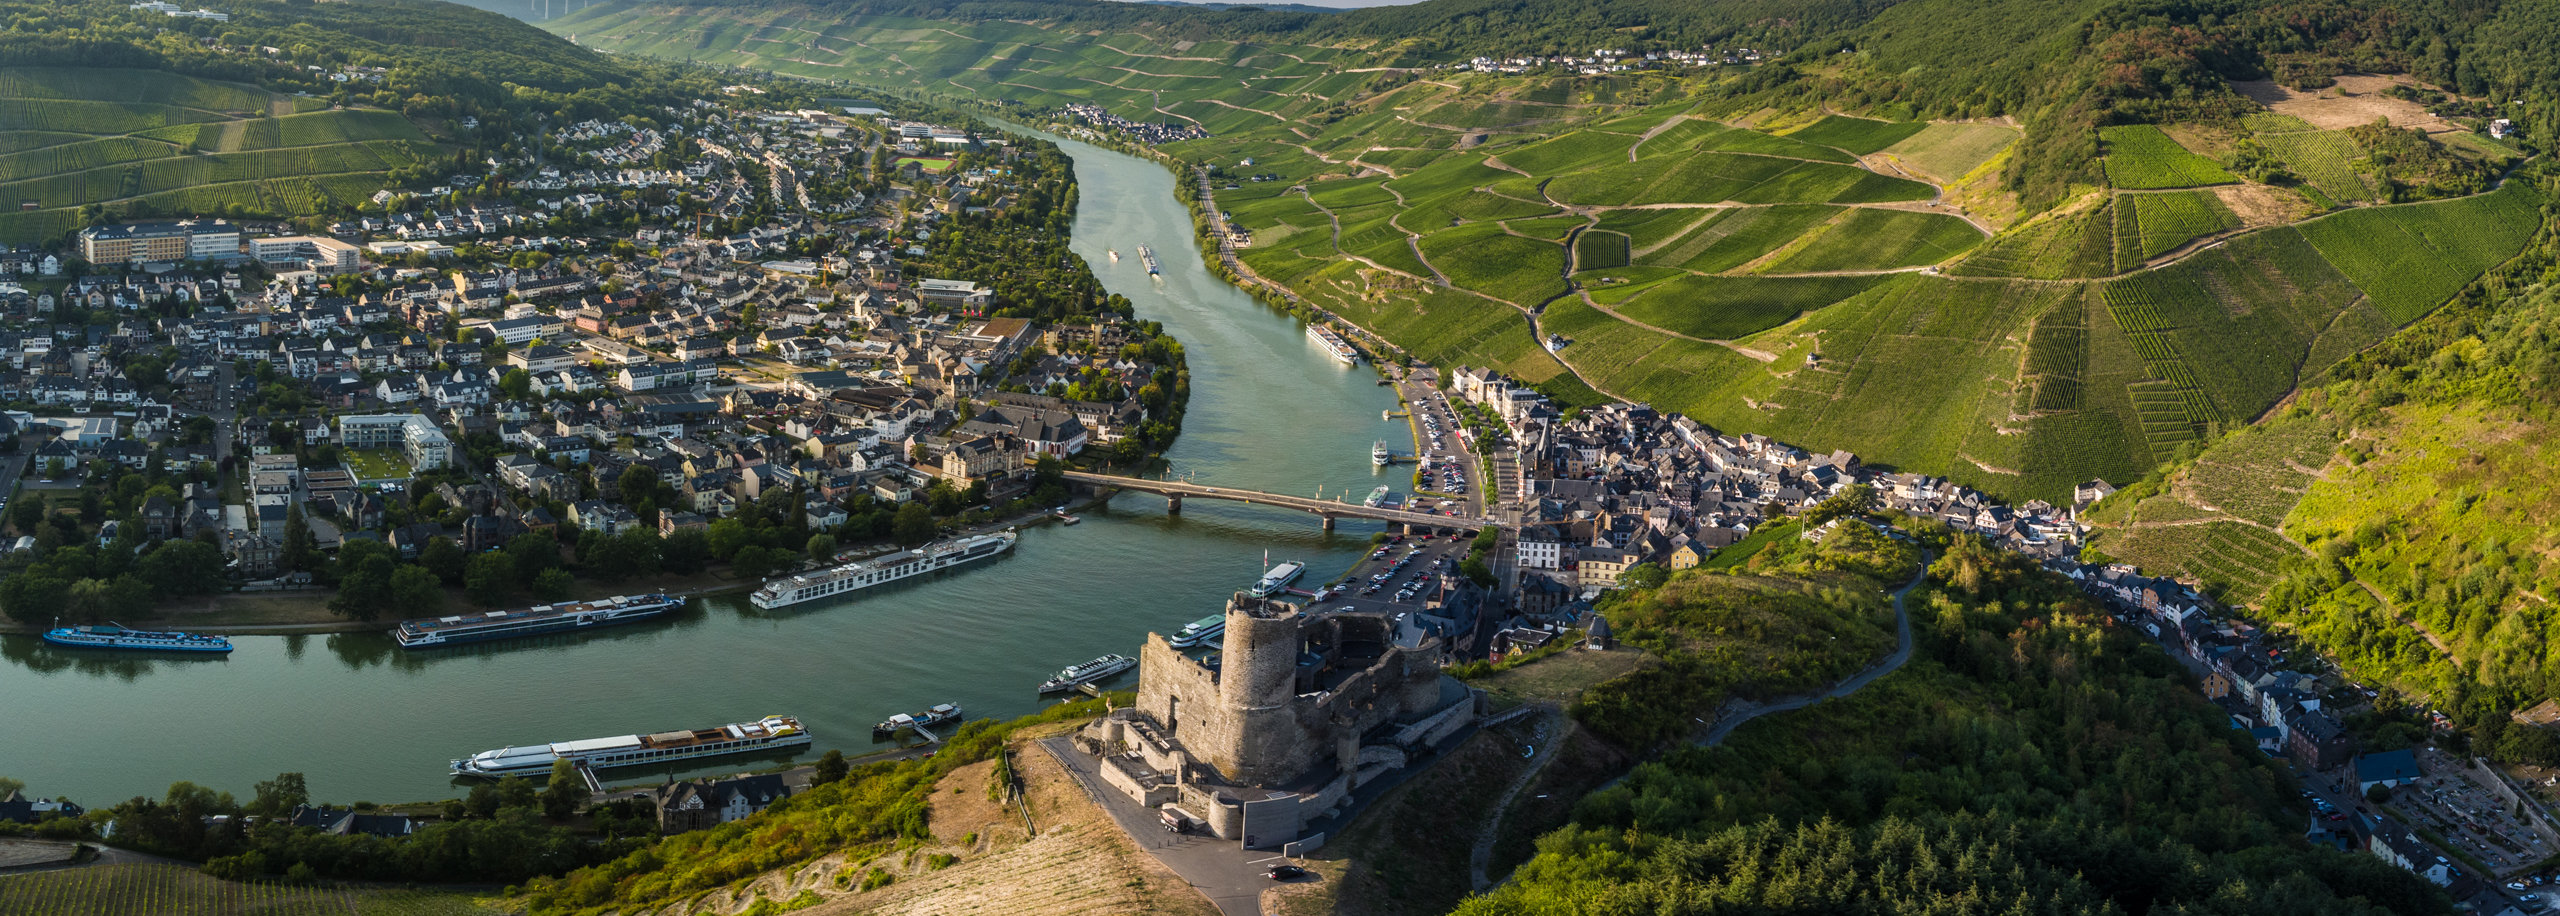 View of Landshut Castle against the backdrop of the Moselle bend at Bernkastel-Kues, Moselle